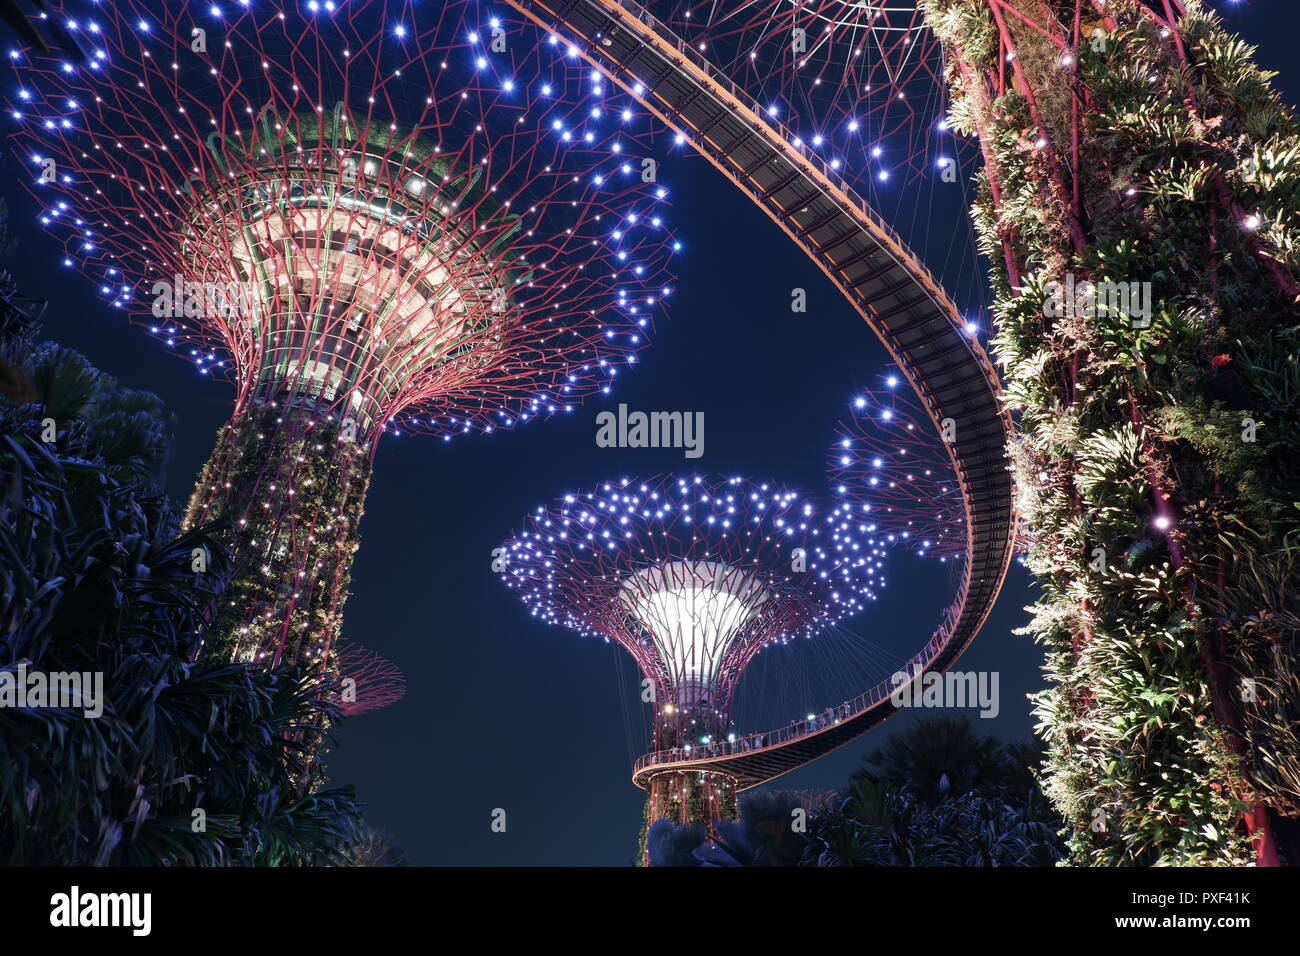 Supertree grove at Gardens By The Bay. These trees are vertical gardens measuring around 25 and 50 metres tall. Stock Photo